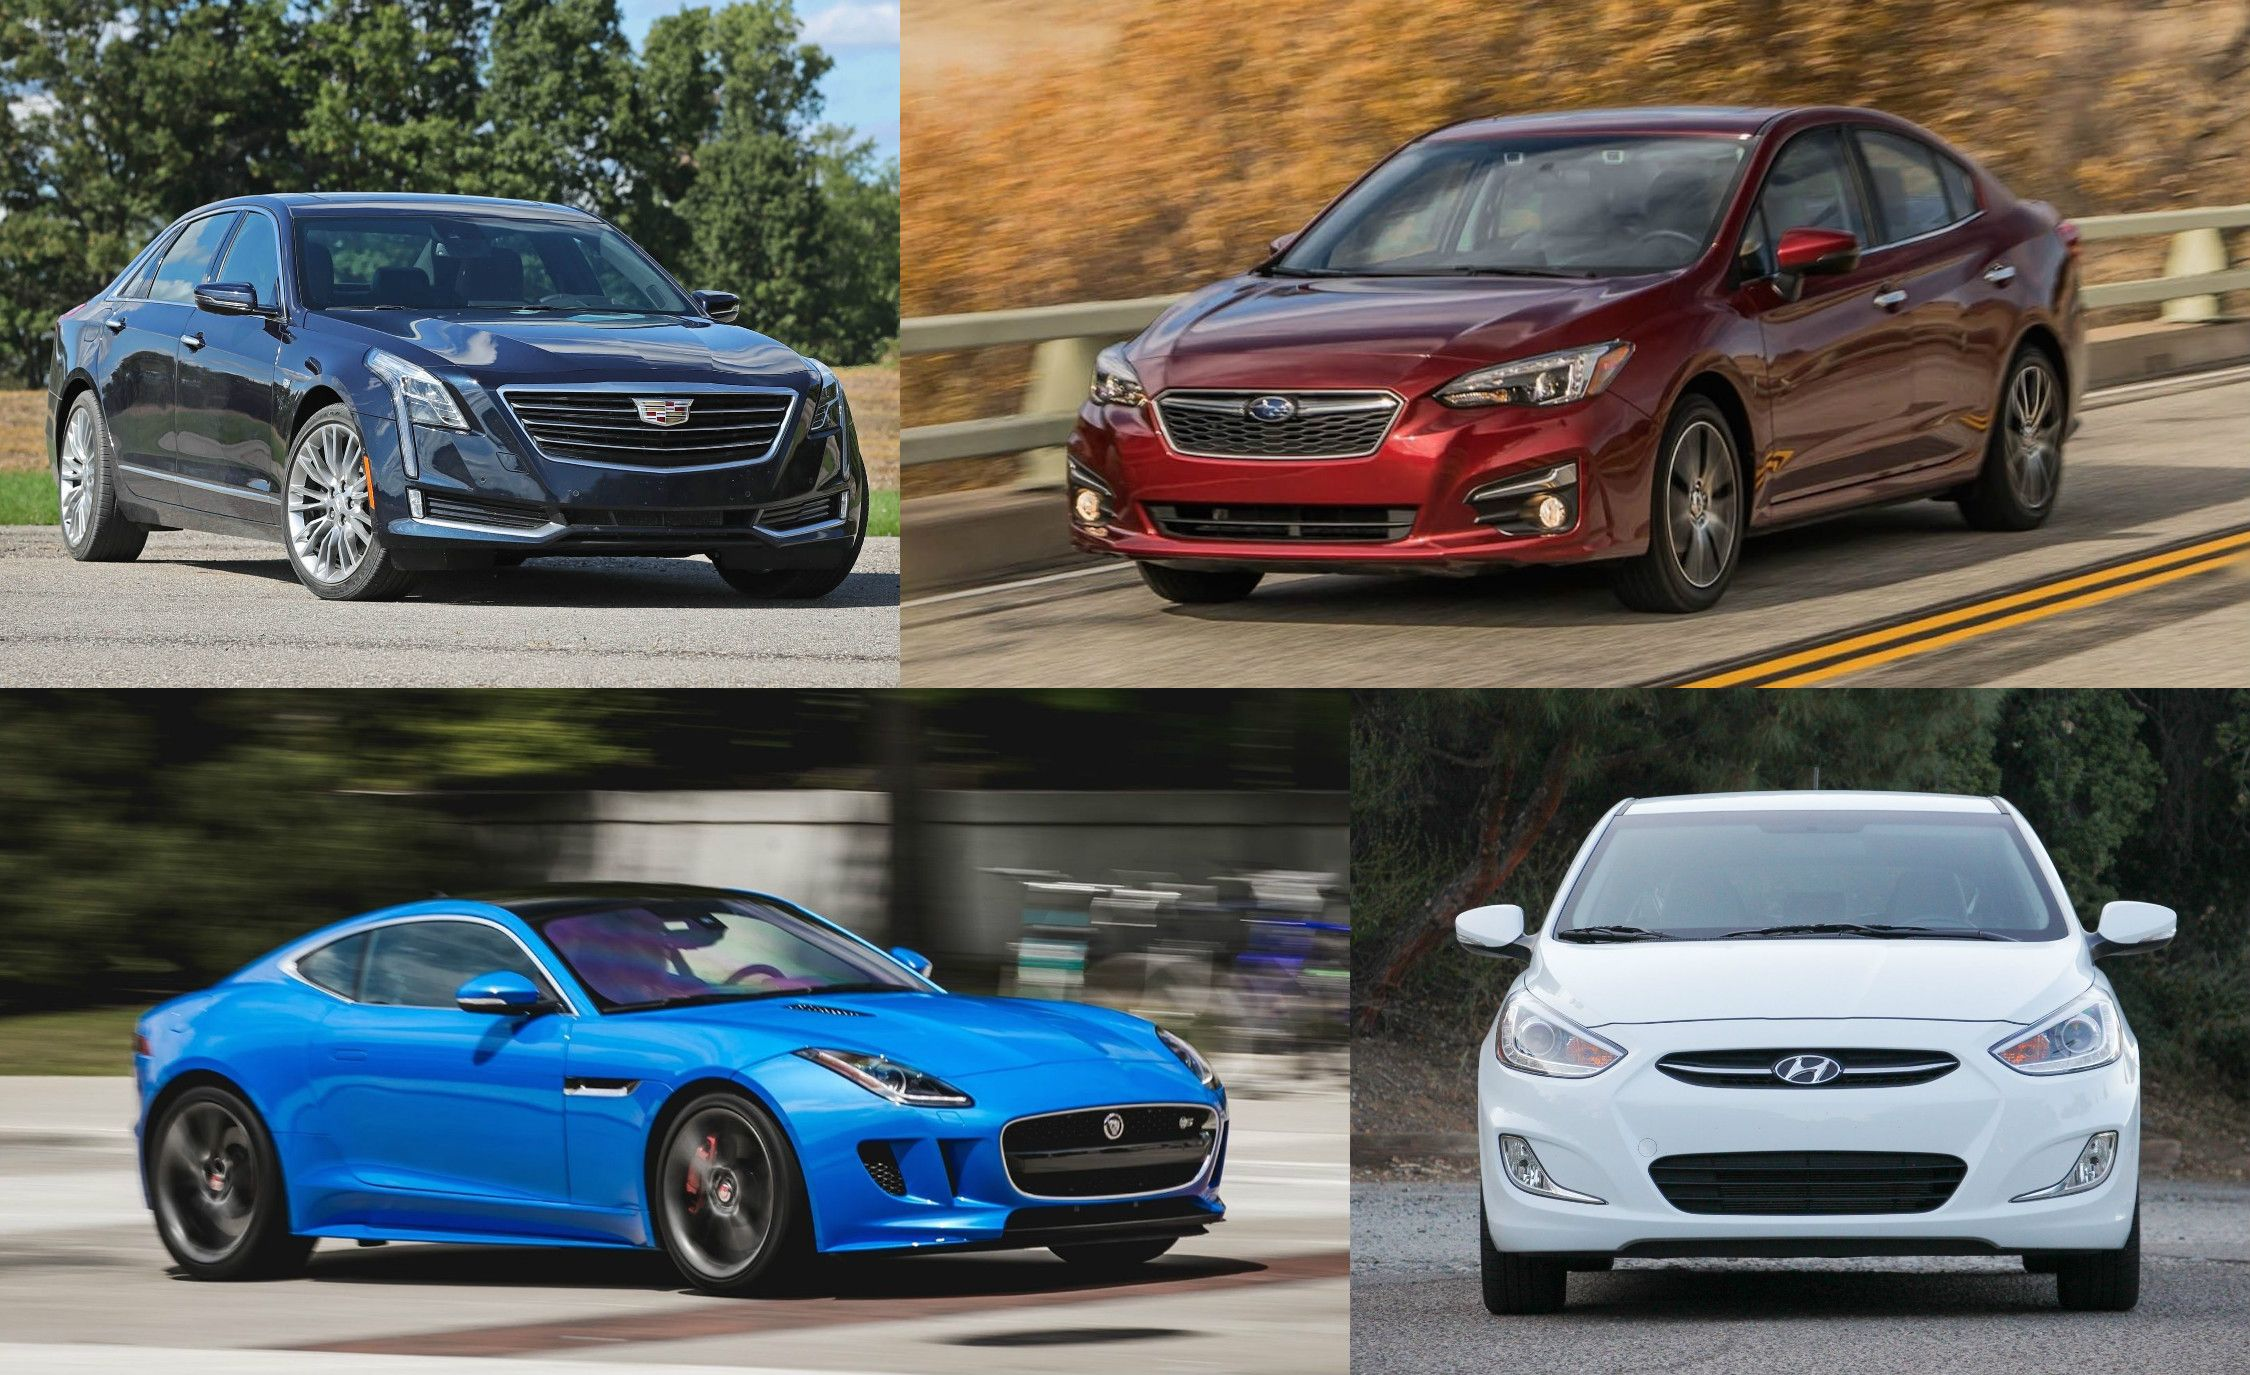 12 New-Car Lease Deals to Make Your Memorial Day Weekend - Slide 1